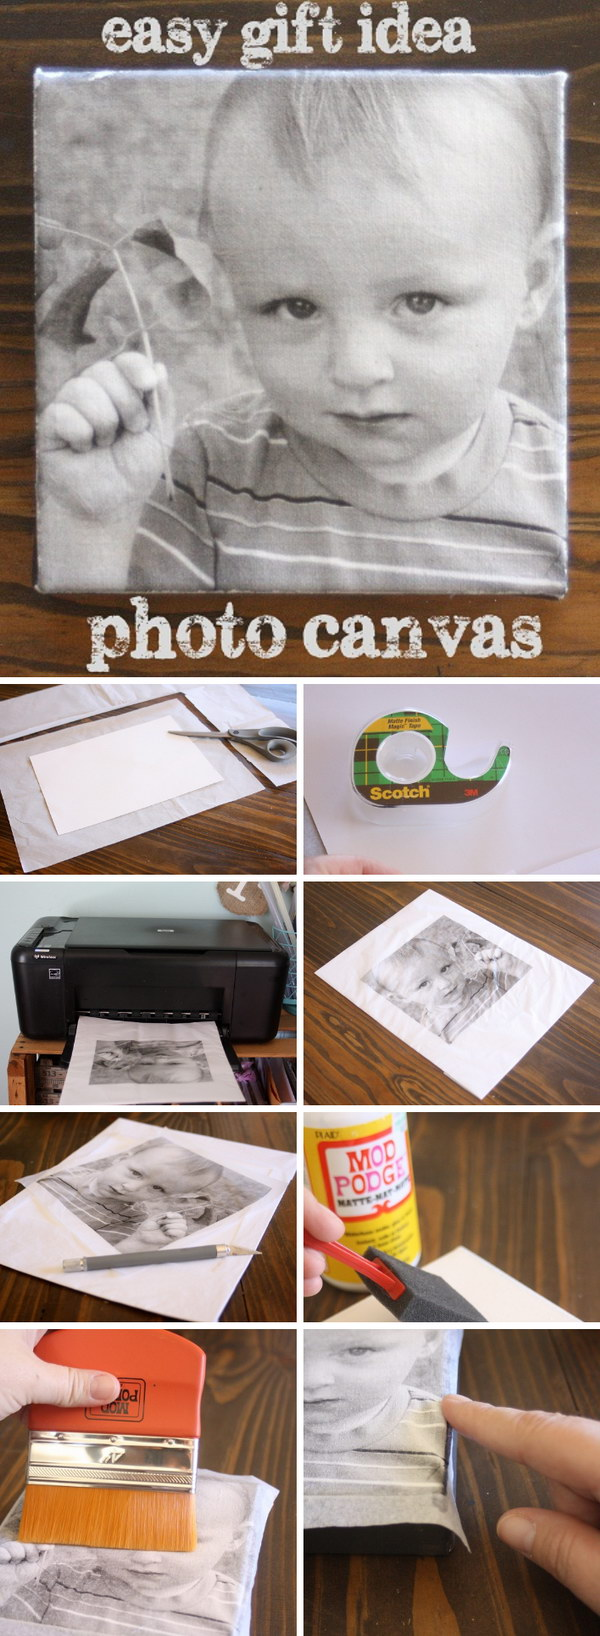 50 Awesome Diy Image Transfer Projects 2017